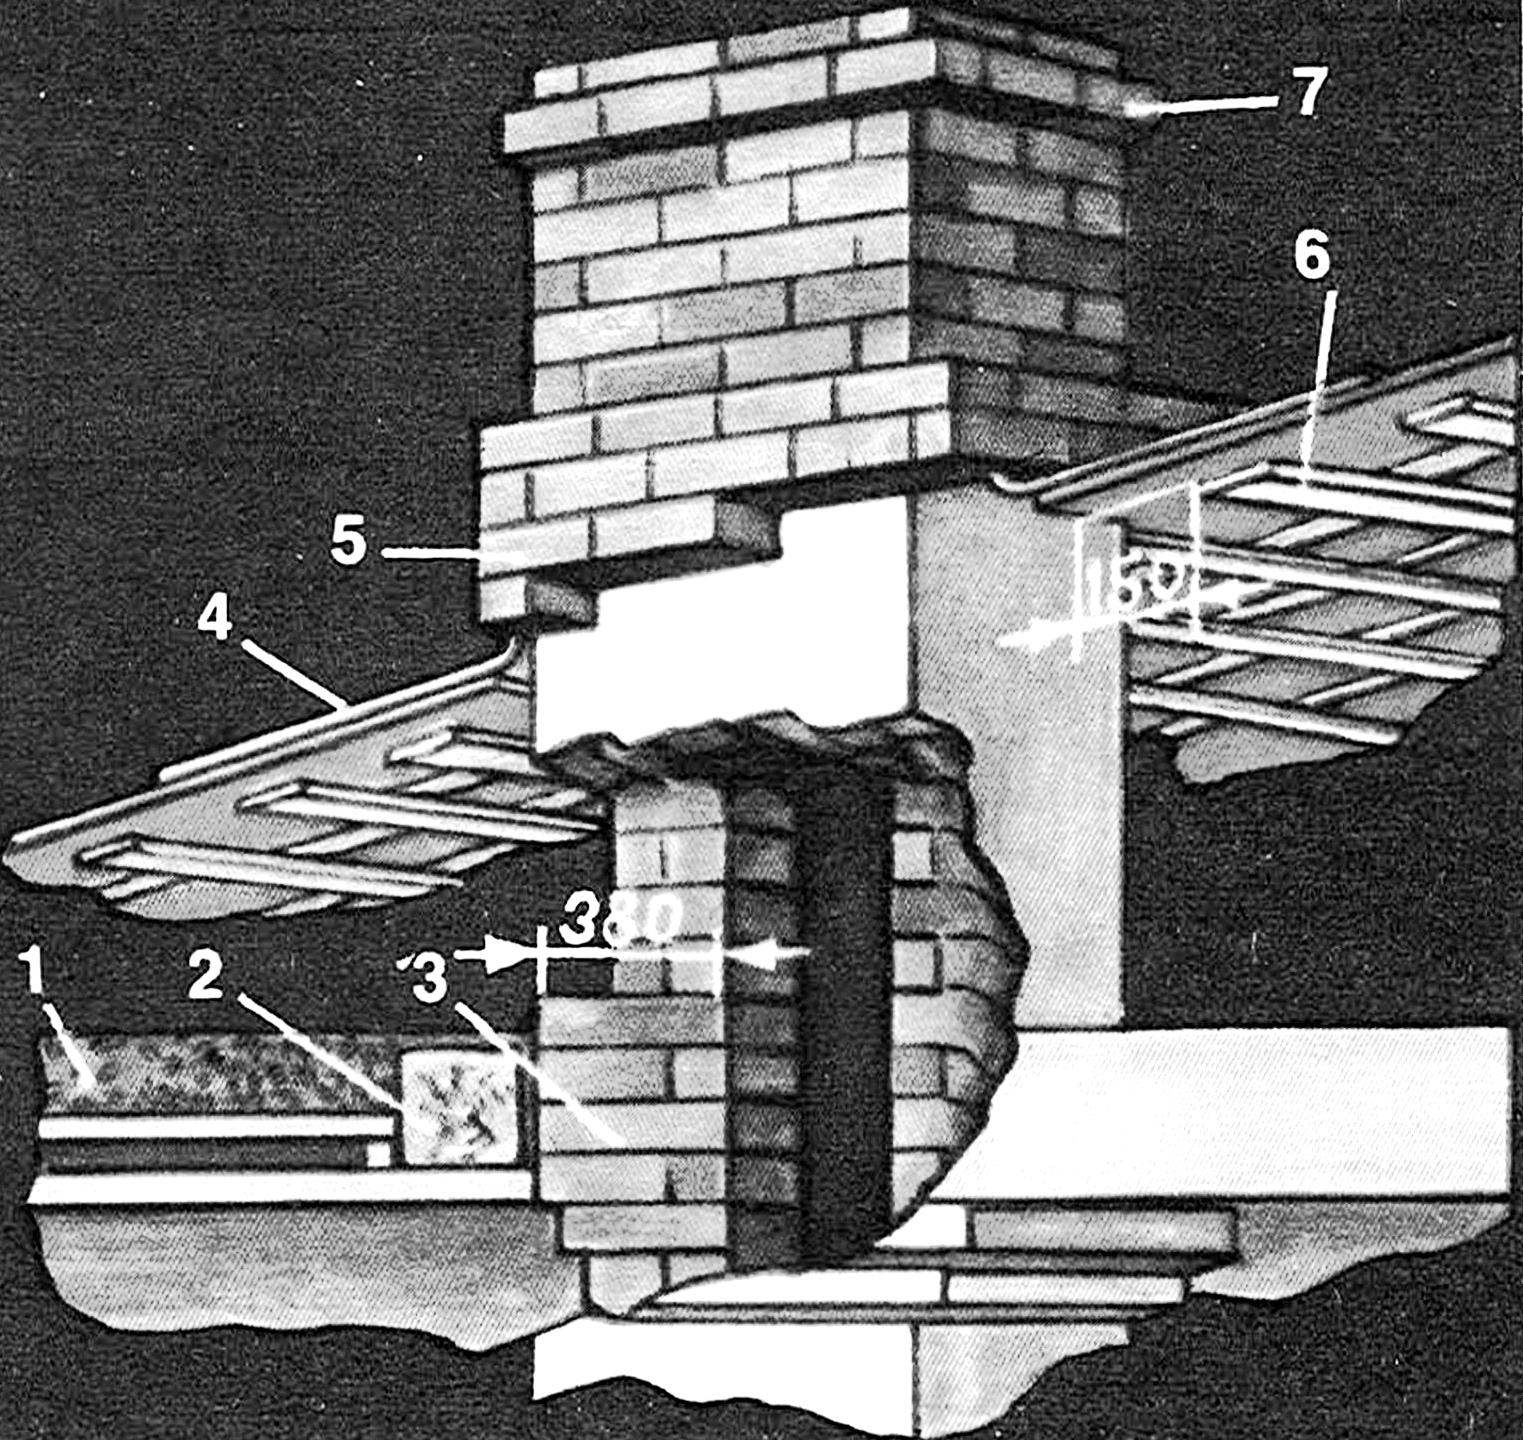 The passage of the chimney through the roof and the attic floor.